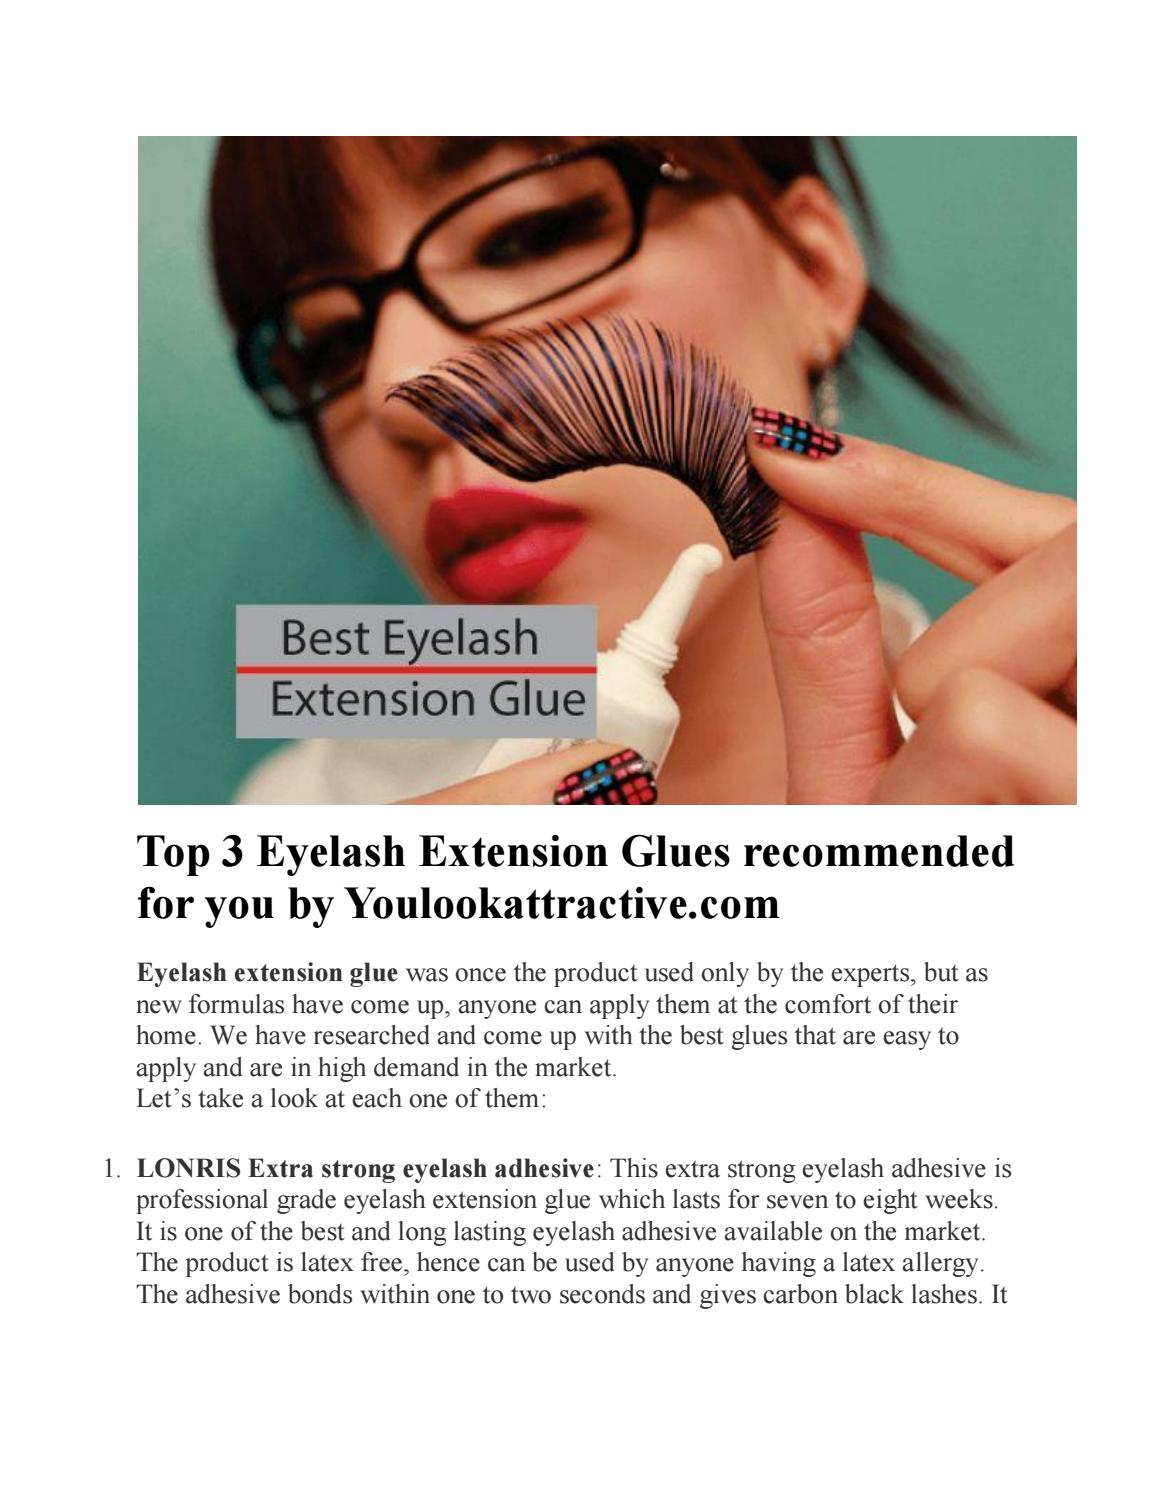 Top 3 Eyelash Extension Glues Recommended For You By